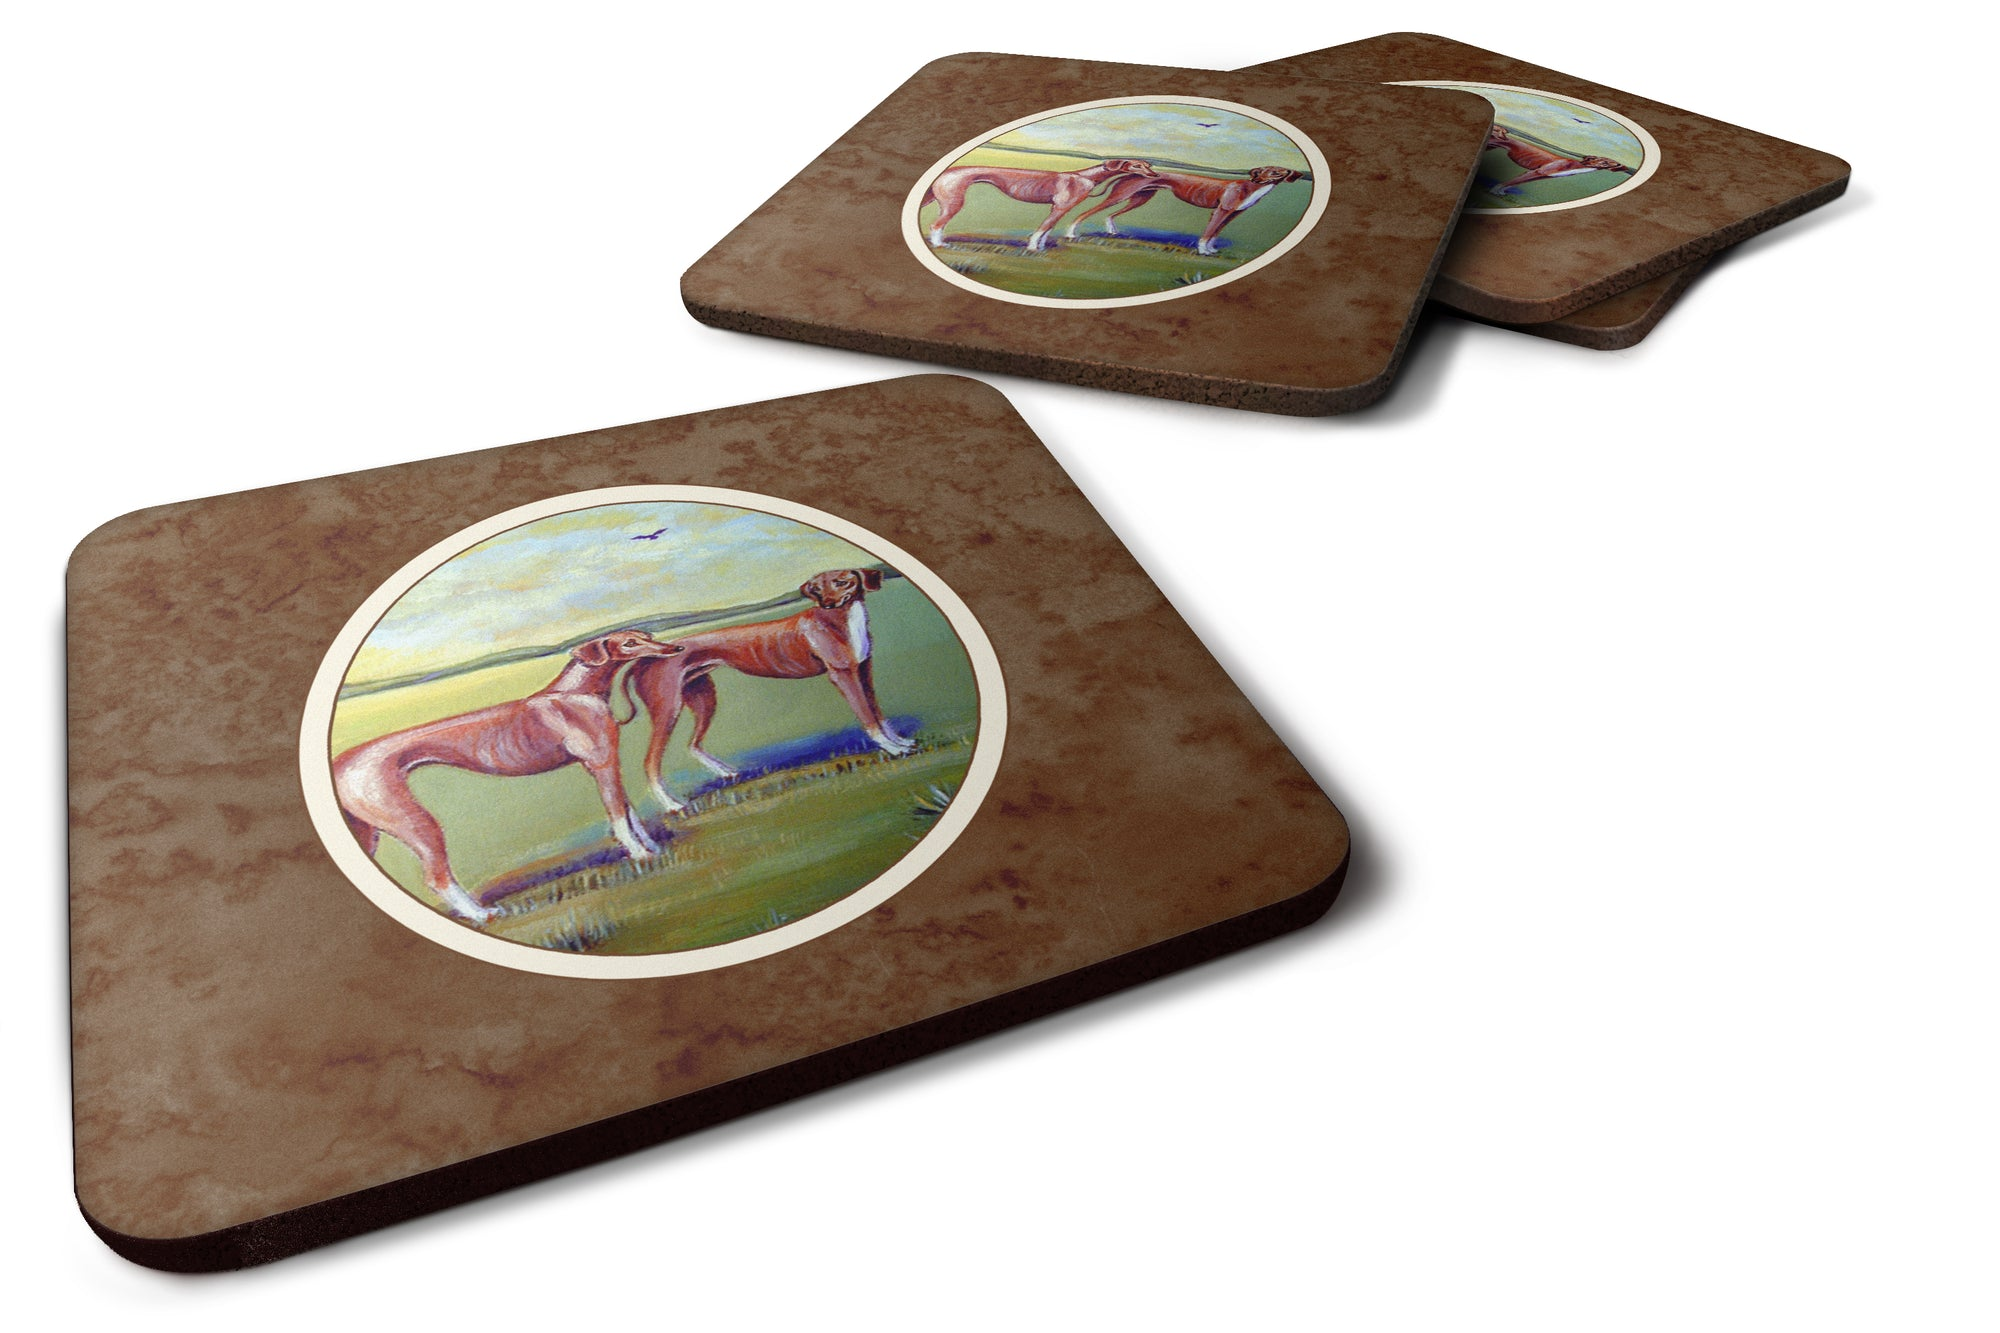 Azawakh Hound Foam Coaster Set of 4 7001FC by Caroline's Treasures